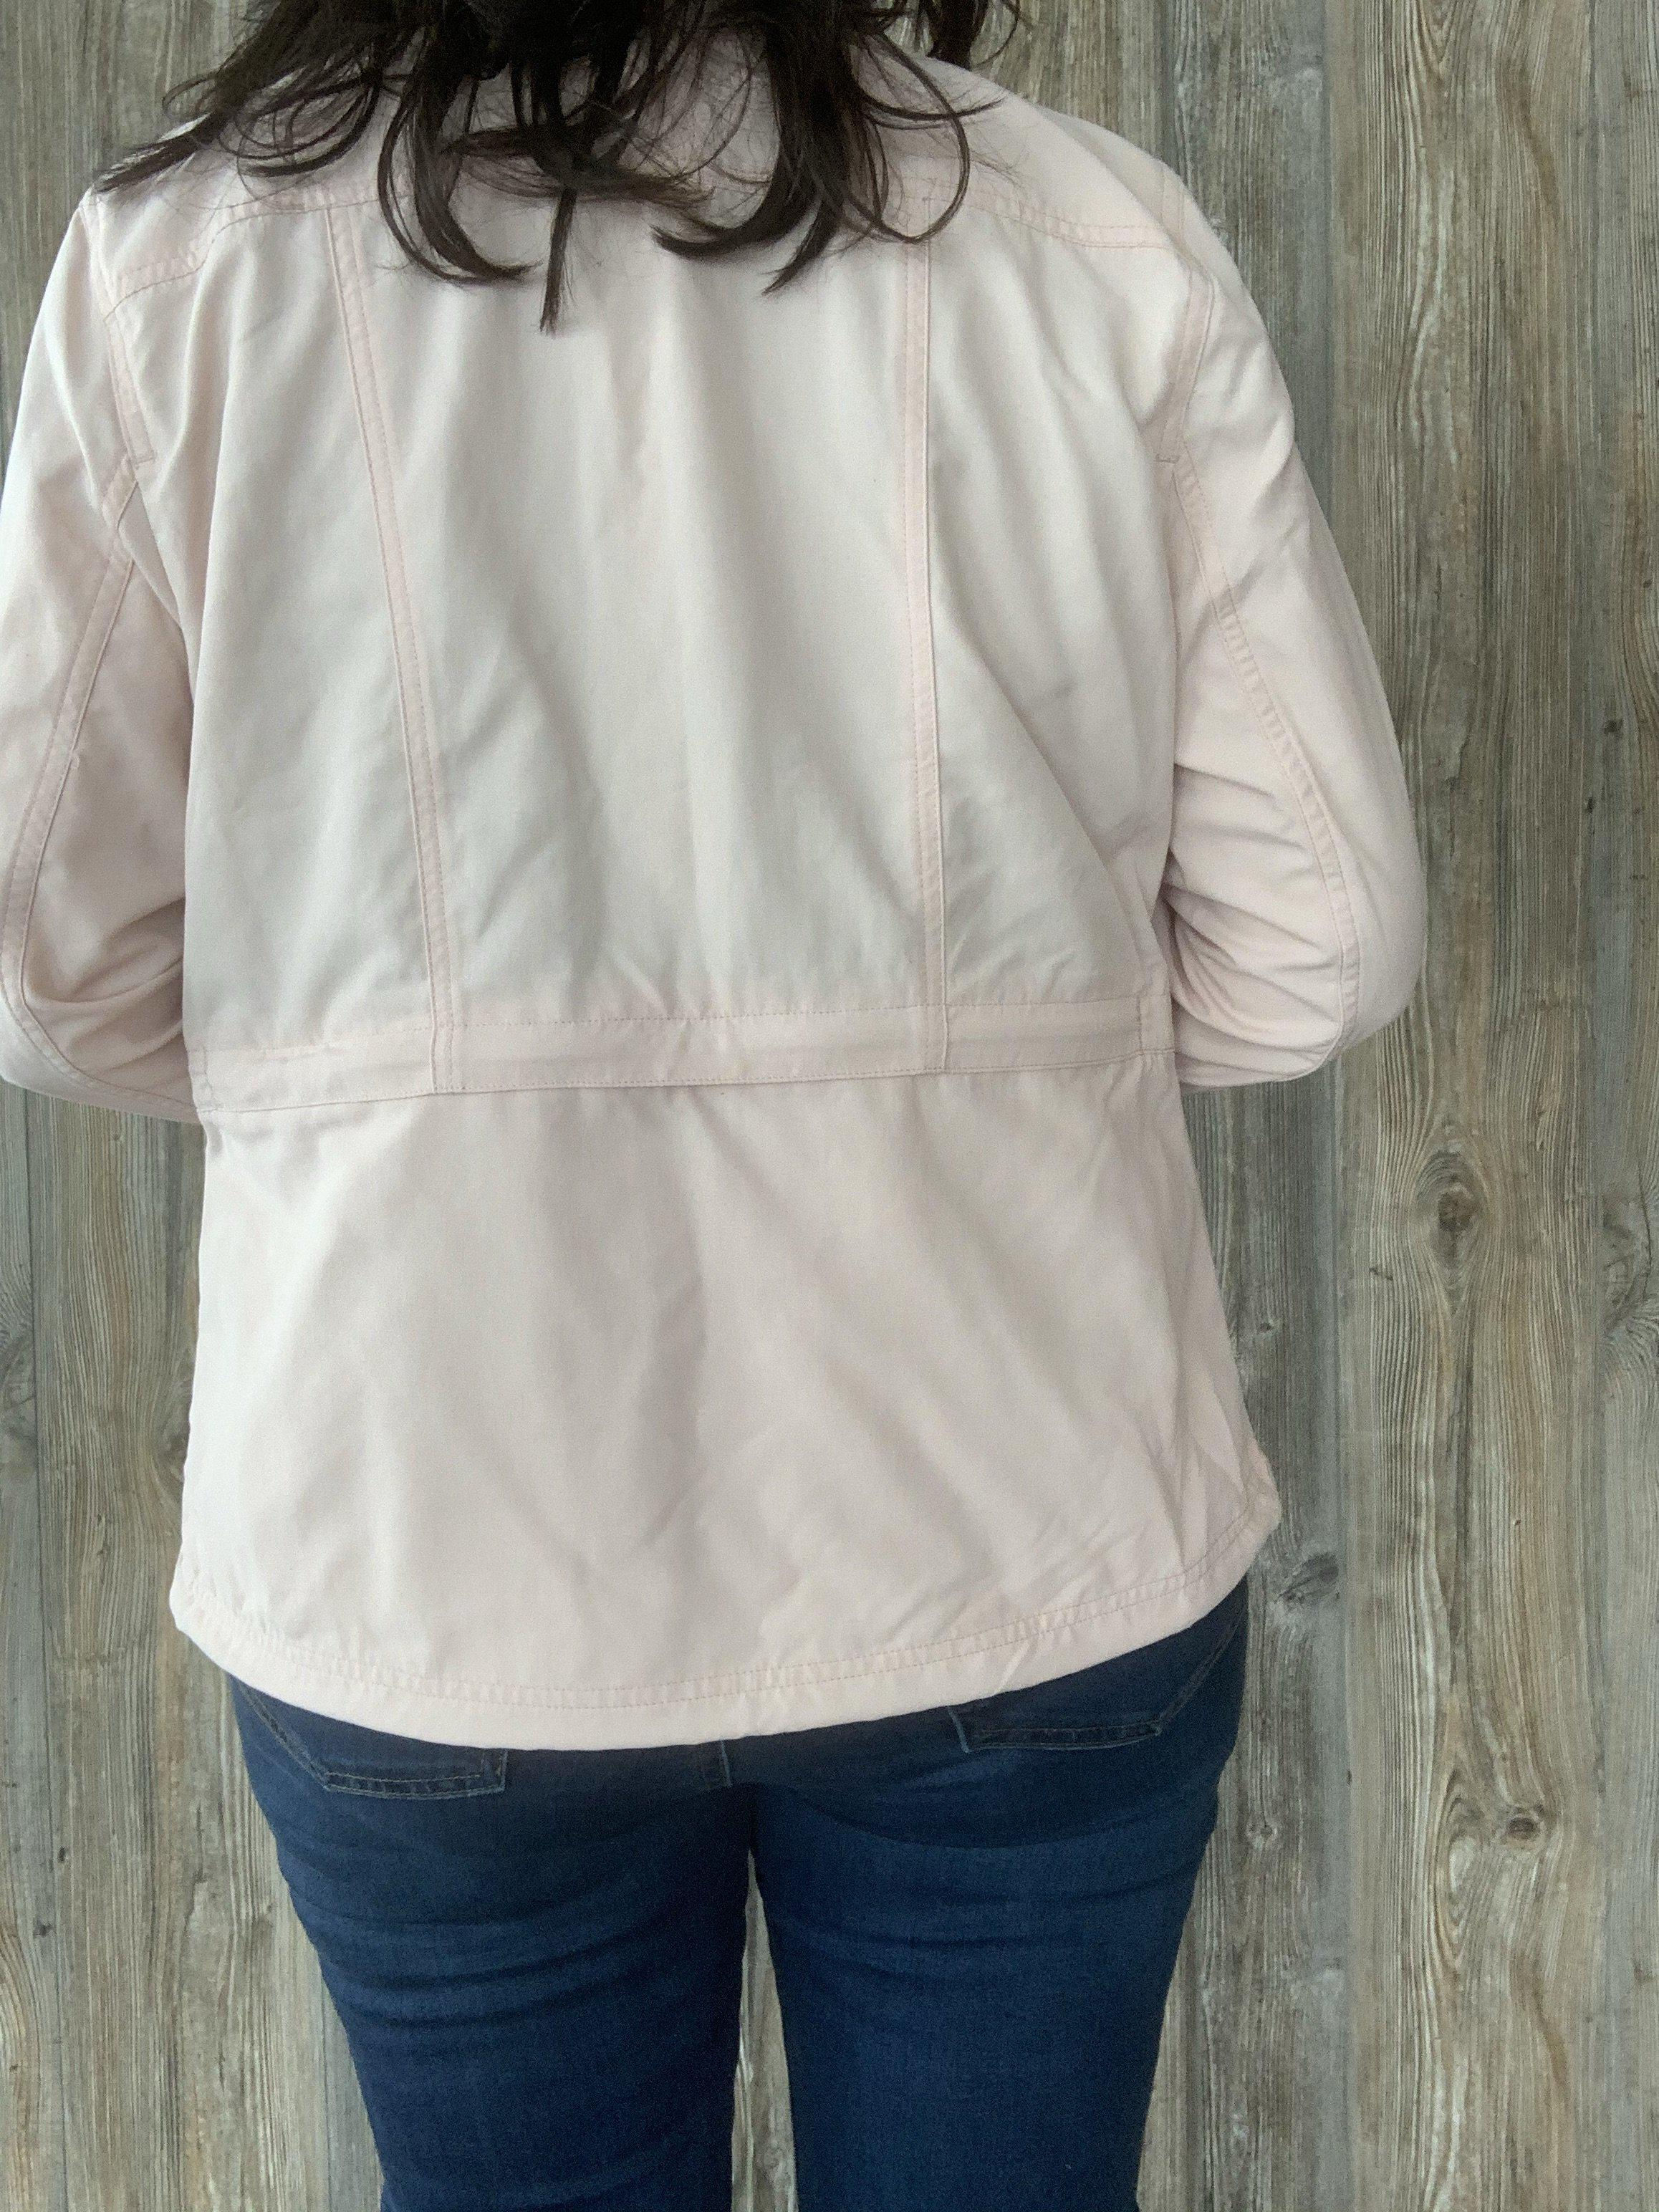 Pocket Full of Posies Light Pink Jacket